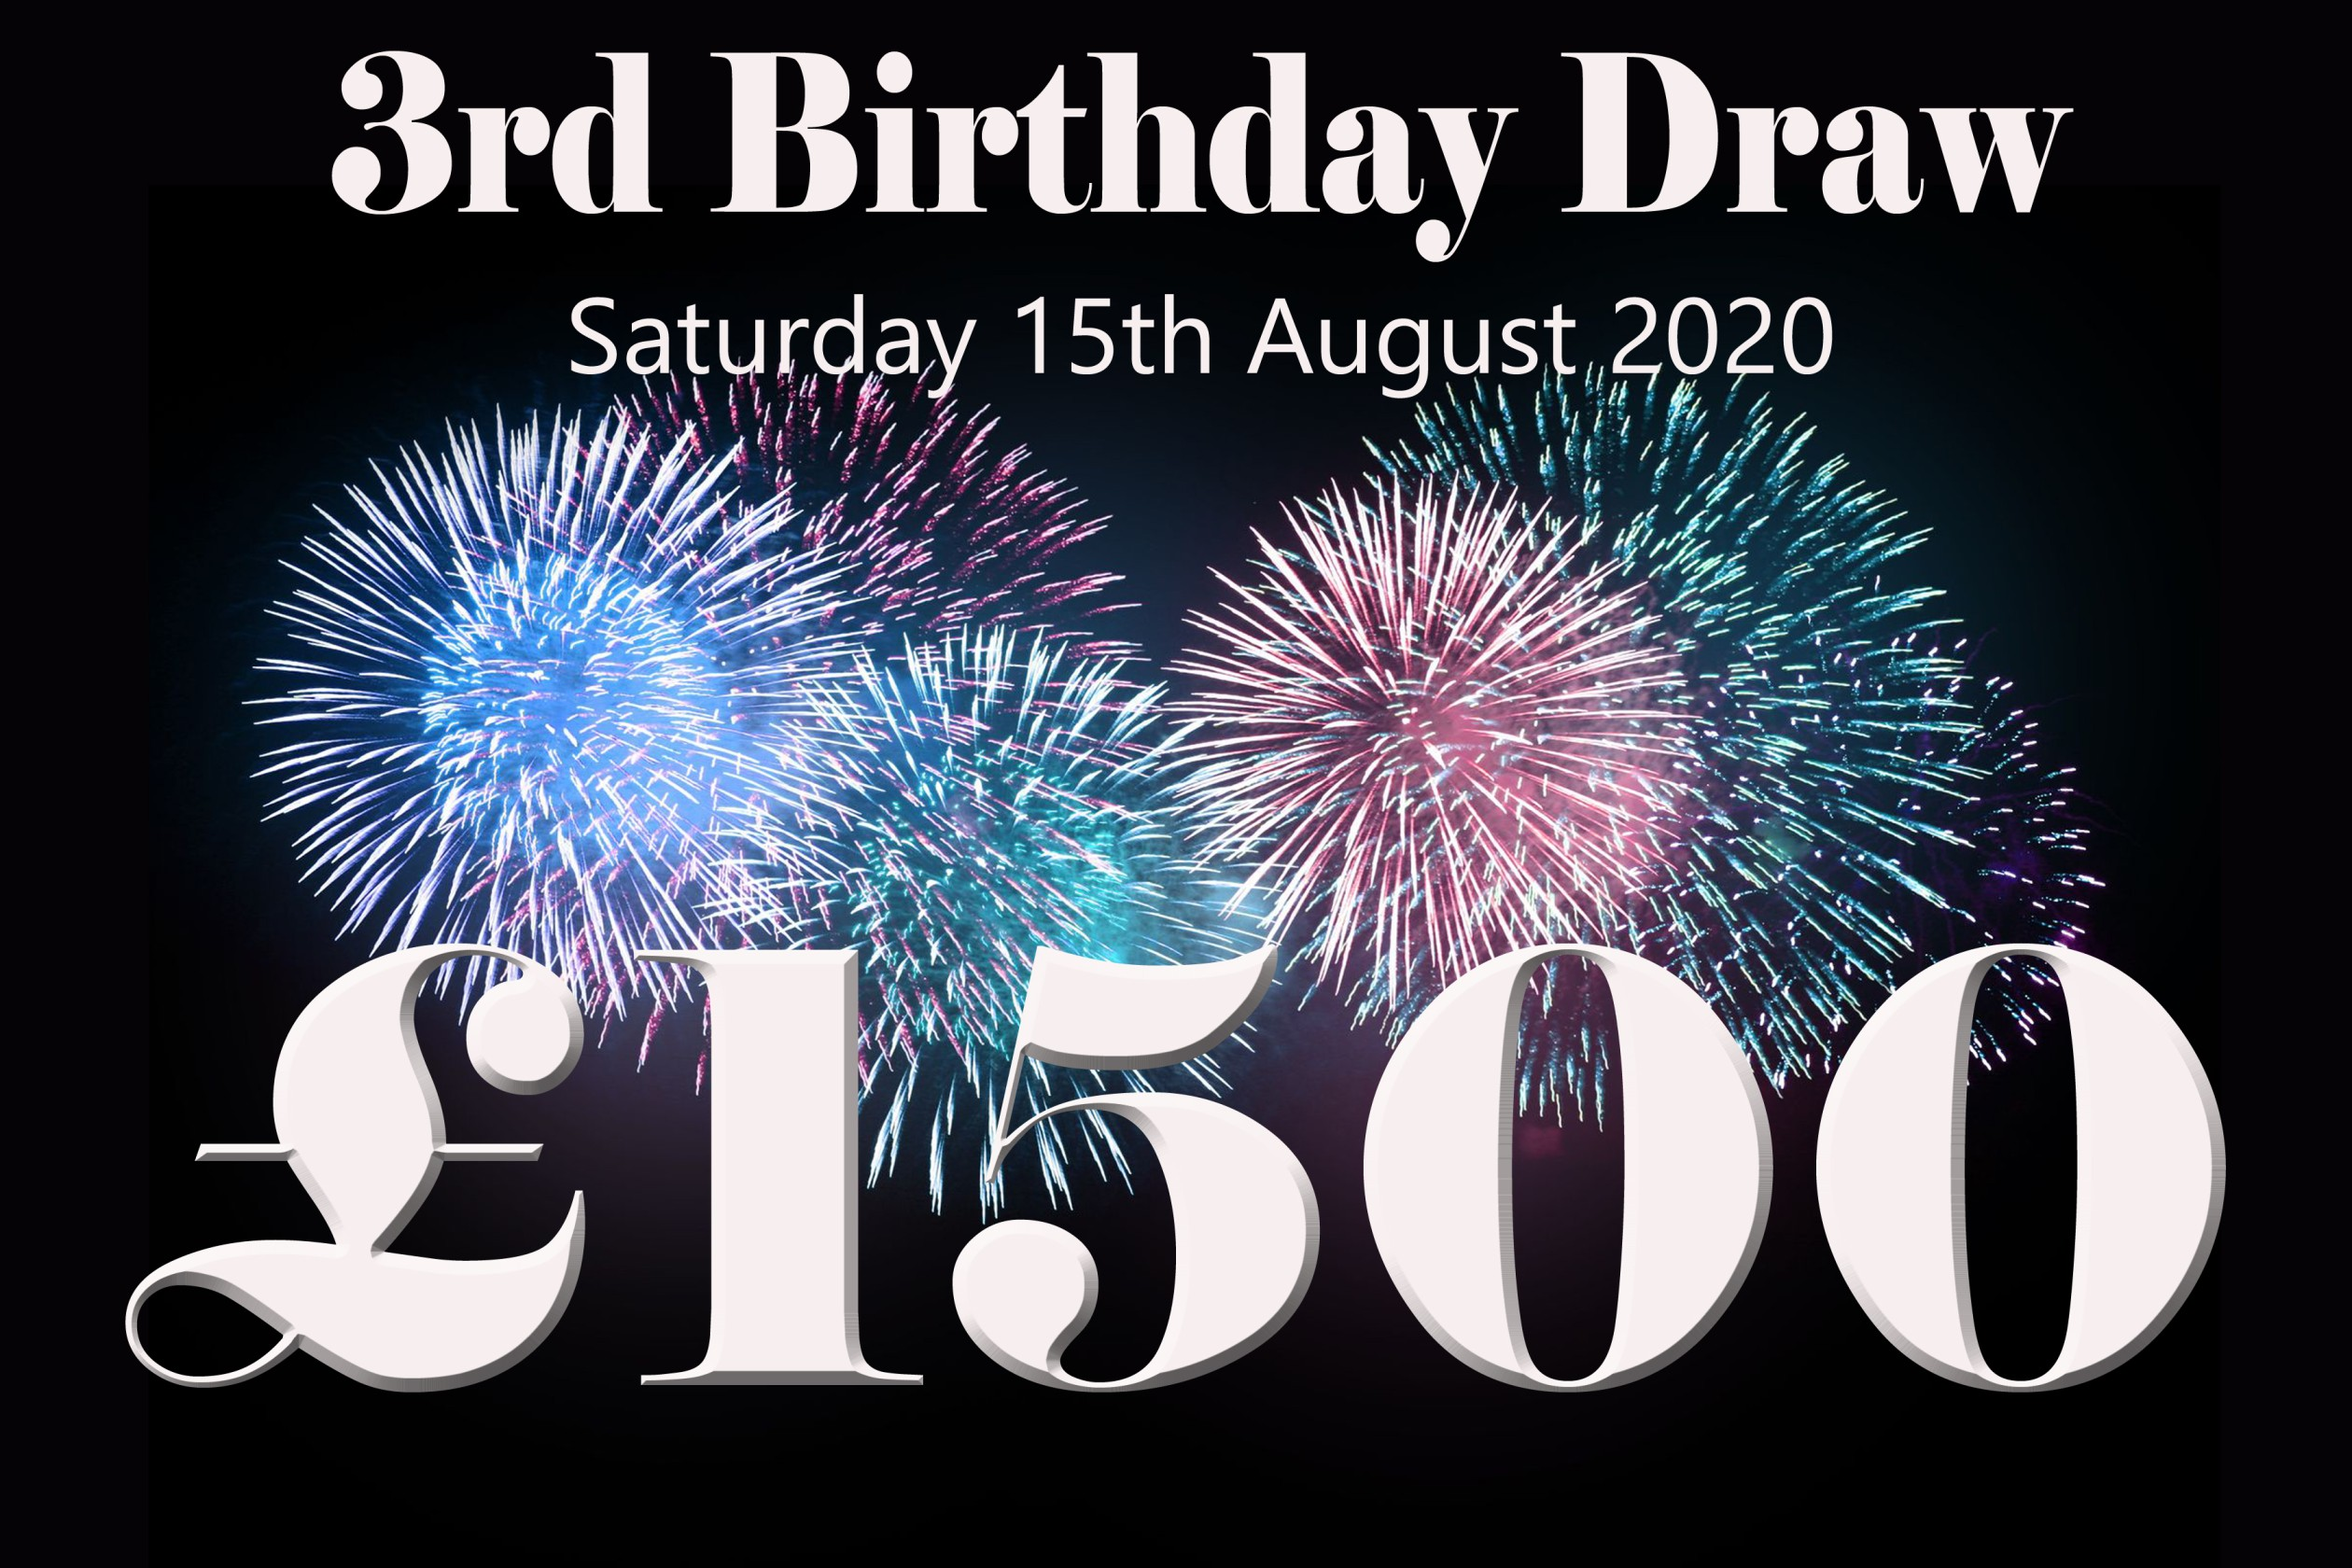 fireworks with text declaring a £1500 prize for the Saturday 15th August 2020 3rd birthday draw